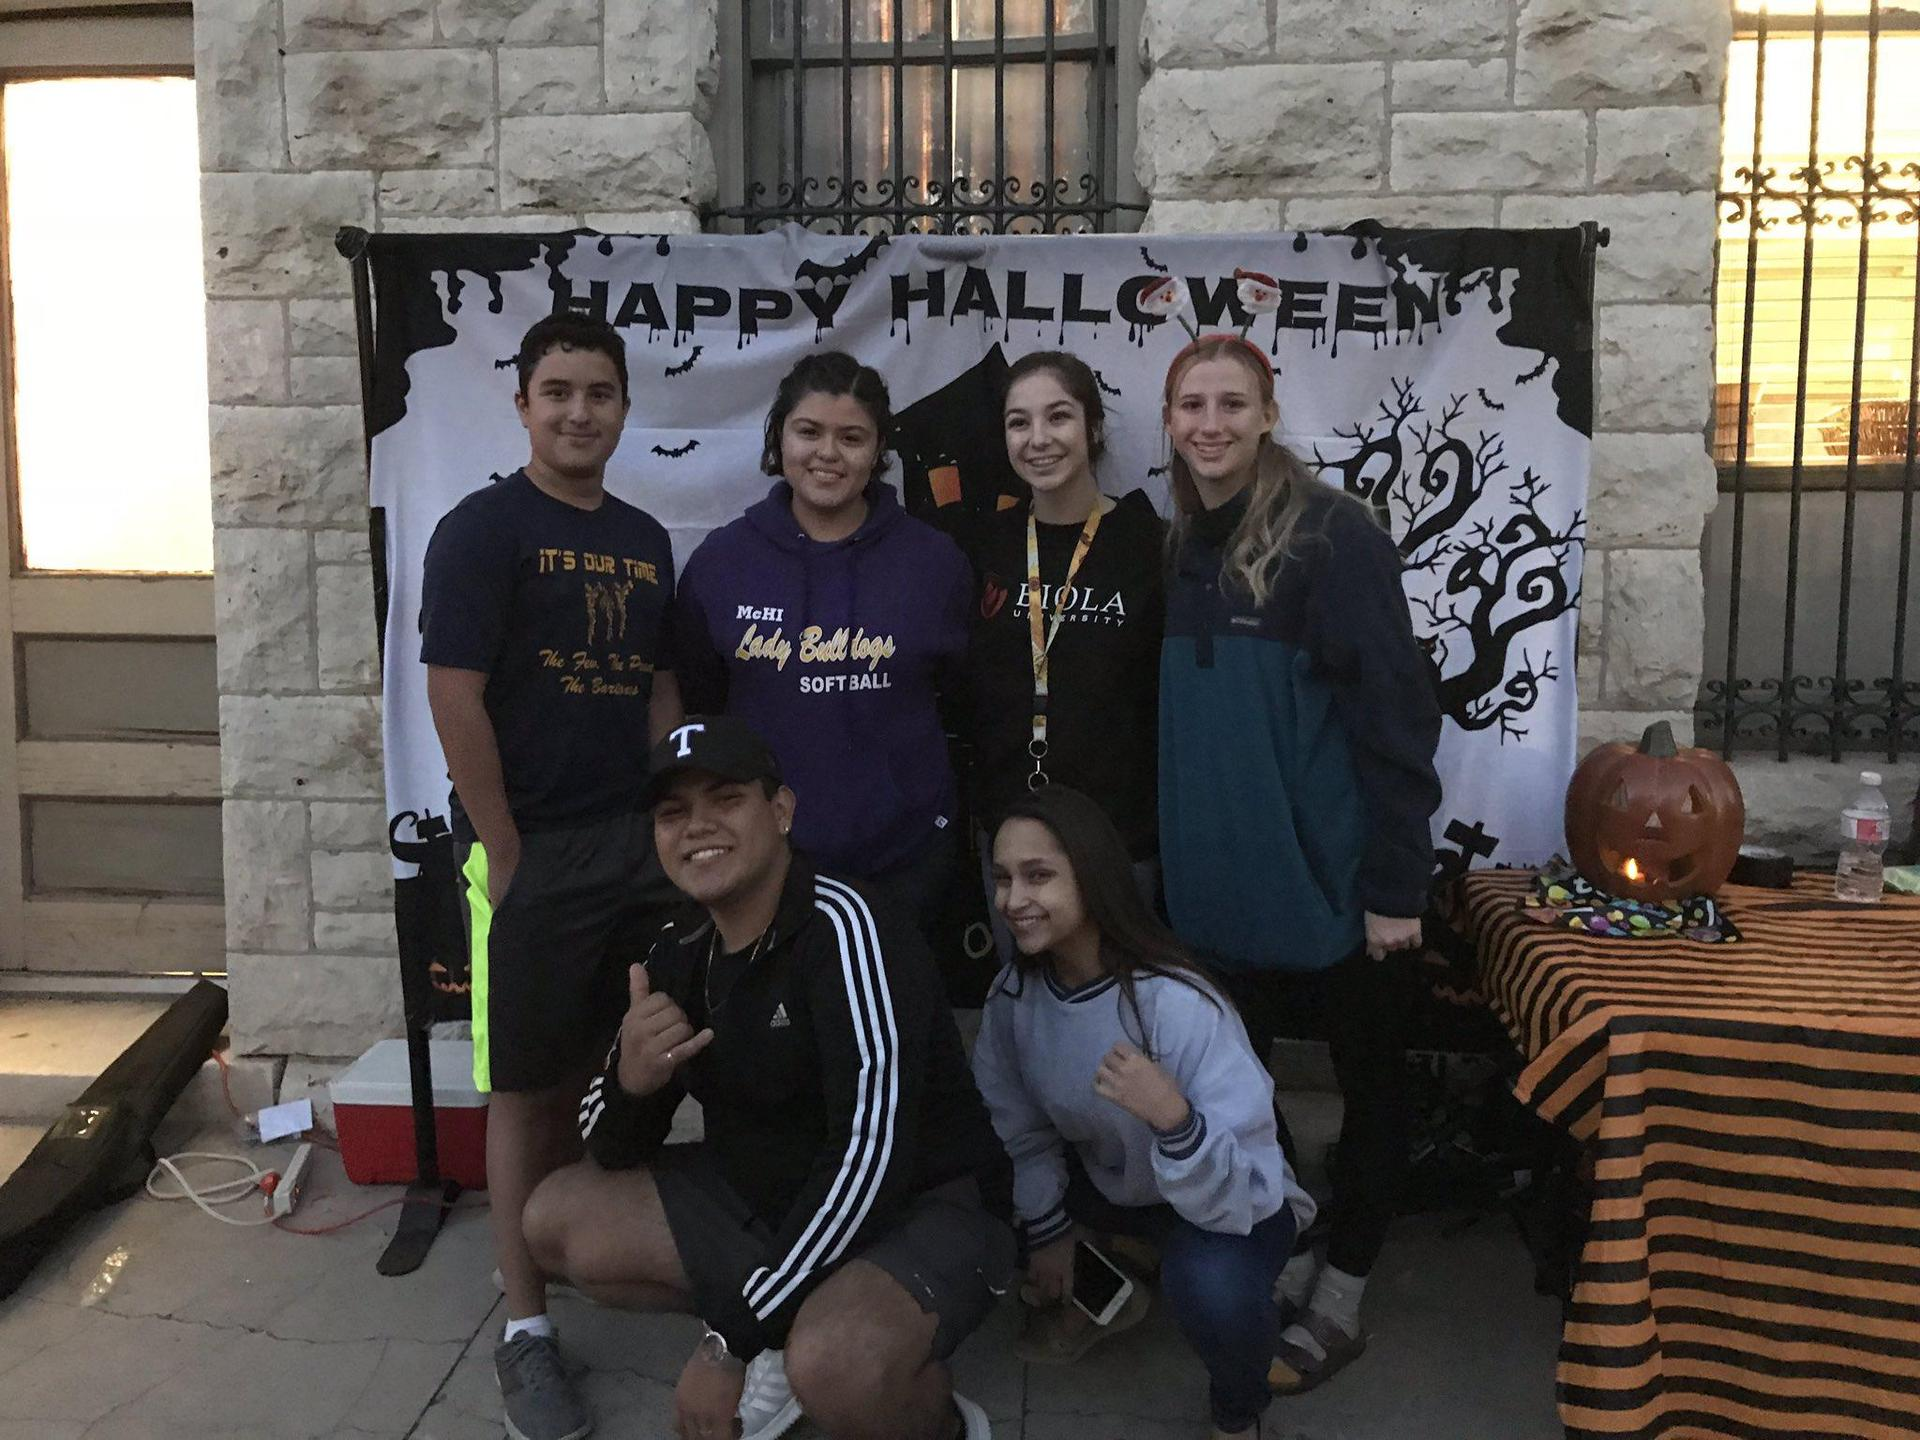 students posing in front of Halloween banner